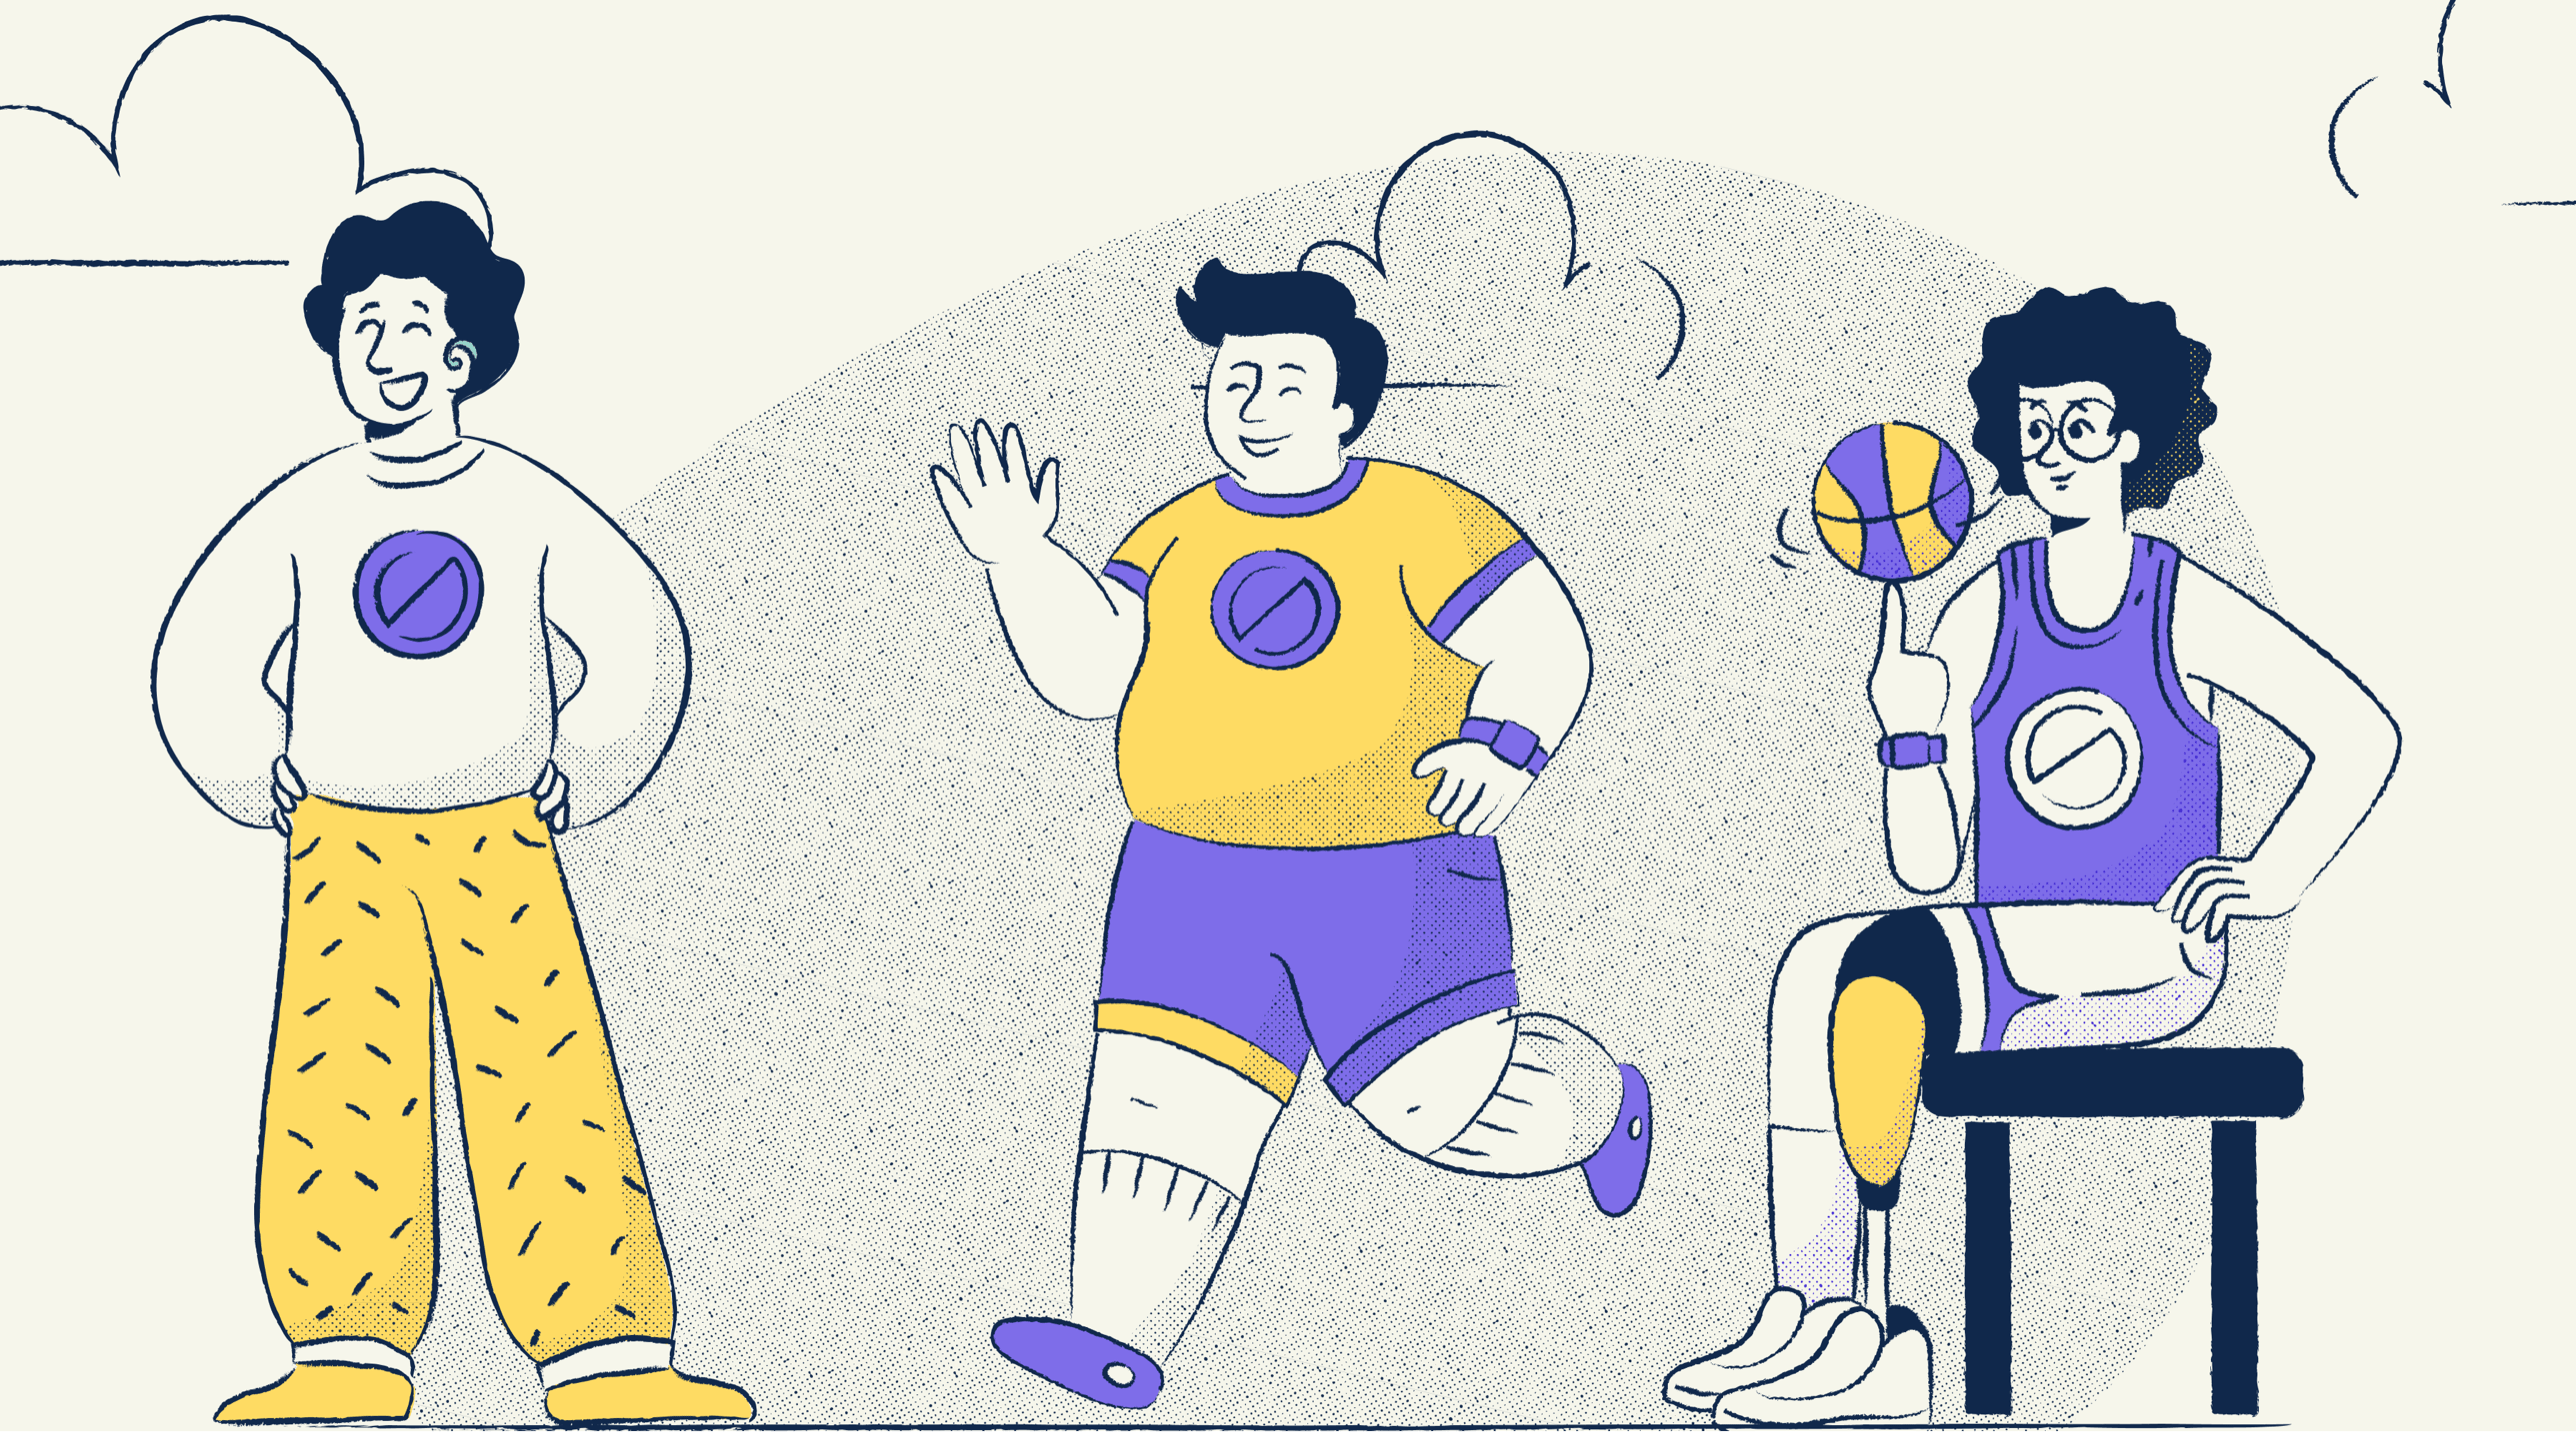 Illustration of 3 team members with various disabilities